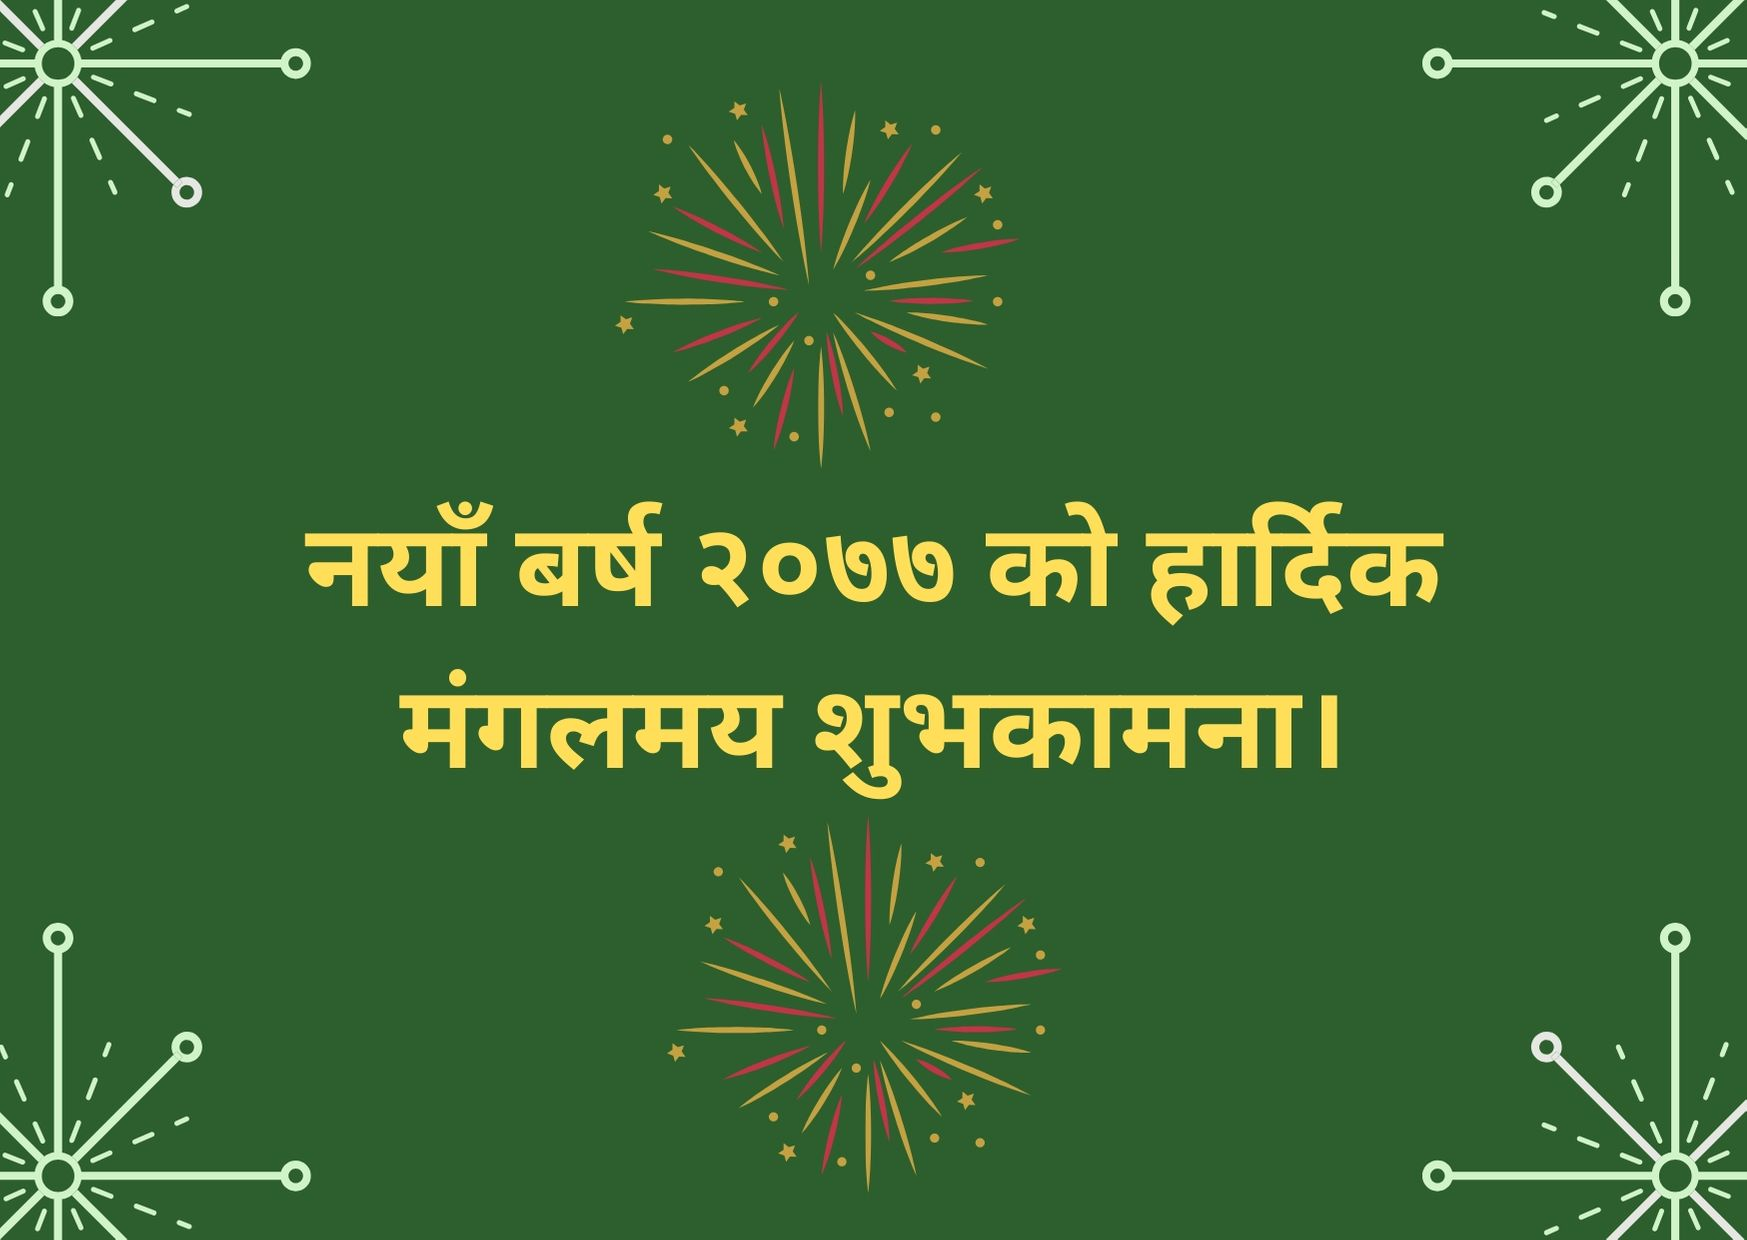 Happy New Year 2077 Wishes, Greetings, SMS & Images